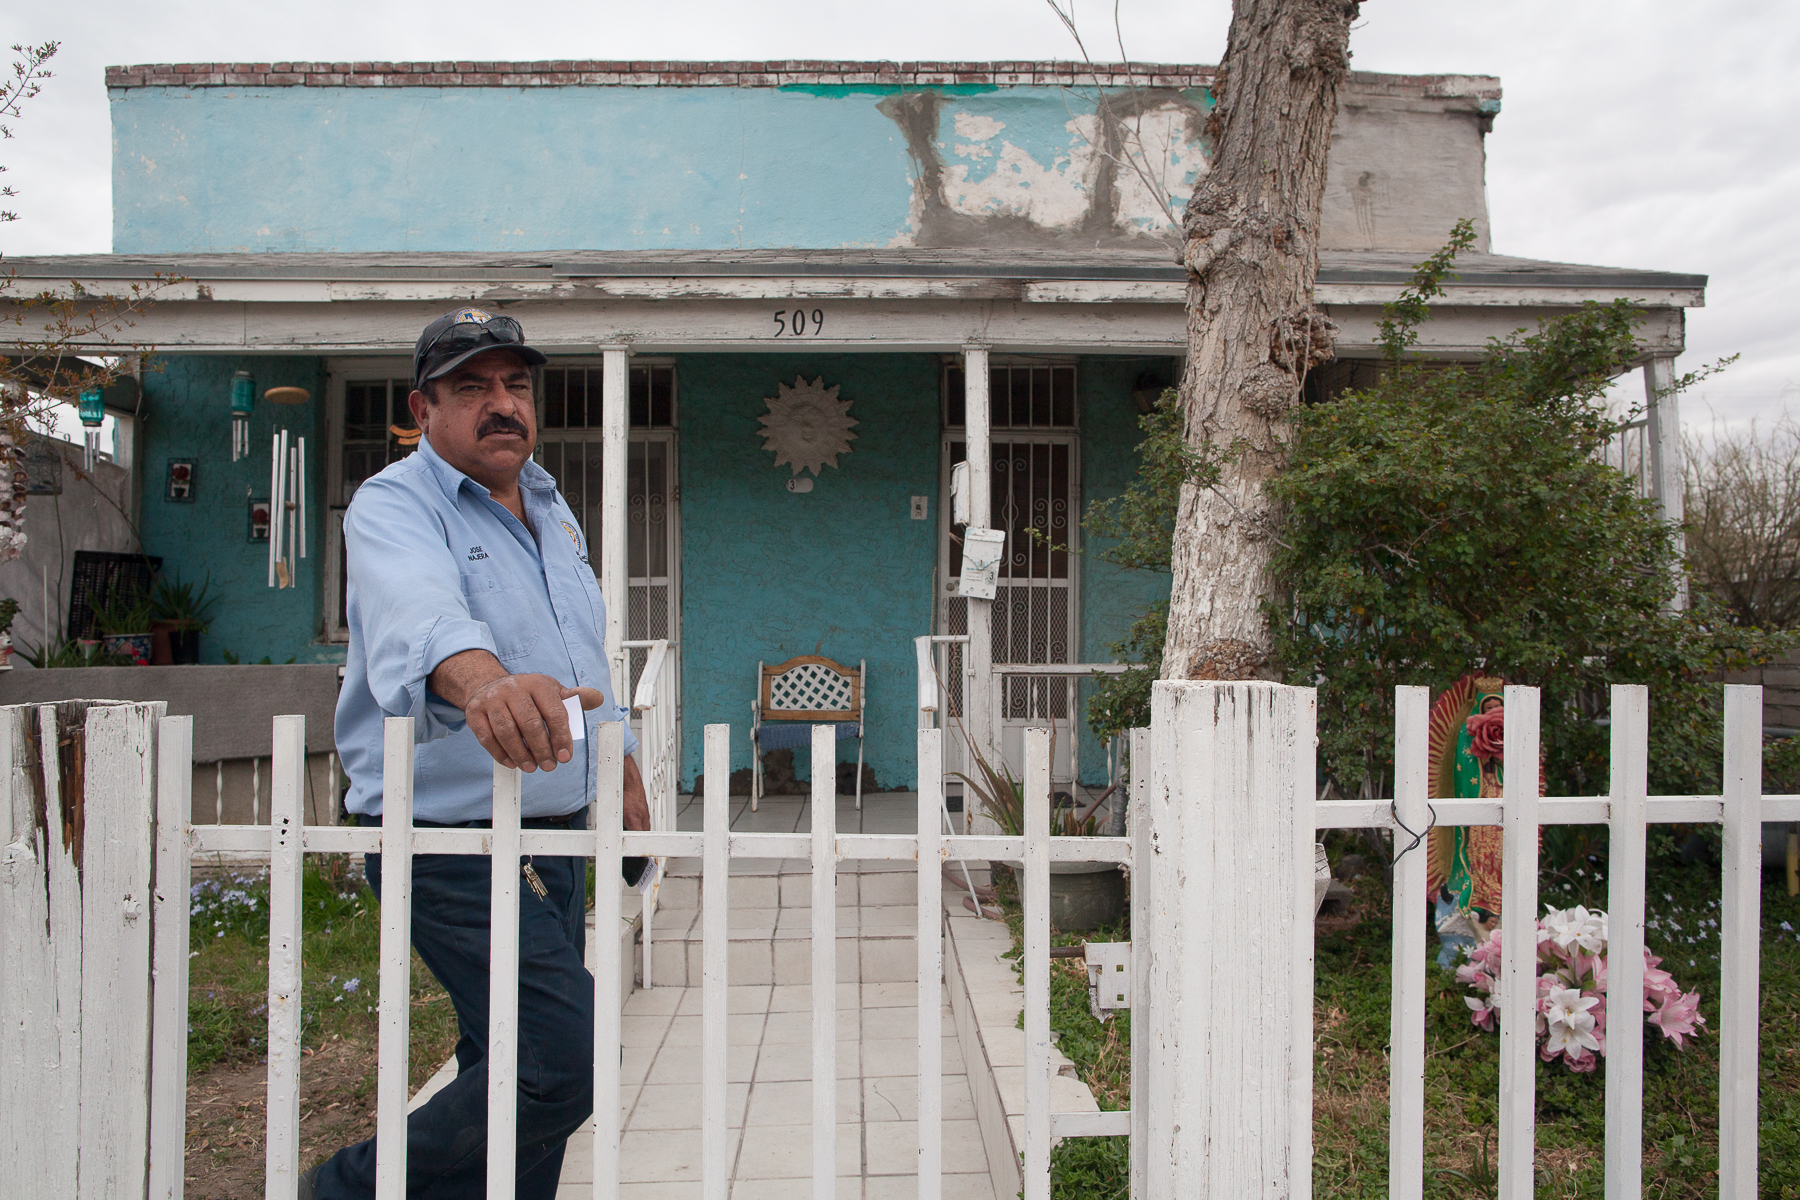 Jose outside his Mother's House in El Segundo Bario, El Paso, TX